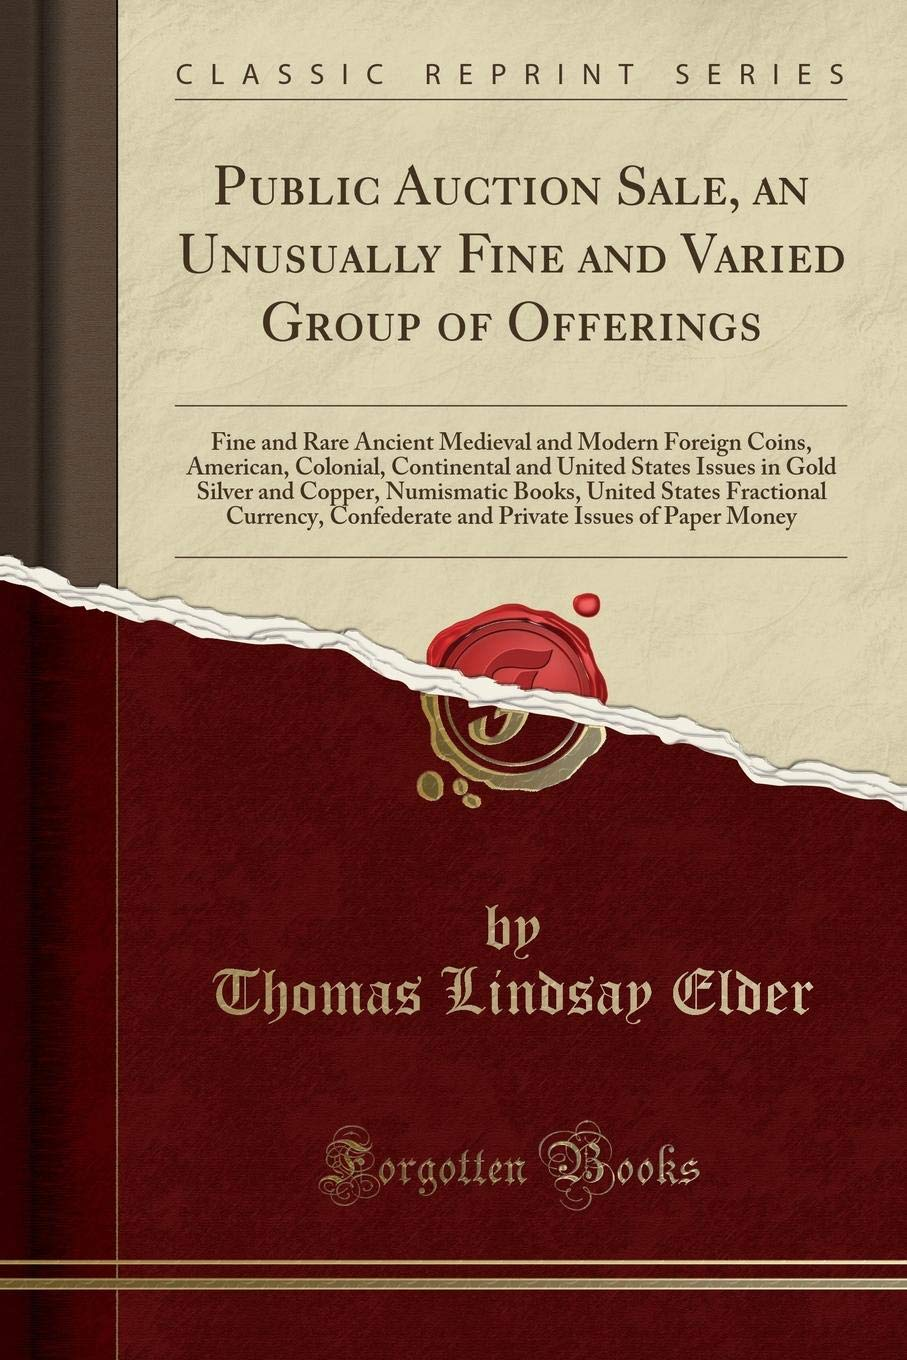 Public Auction Sale, an Unusually Fine and Varied Group of Offerings: Fine and Rare Ancient Medieval and Modern Foreign Coins, American, Colonial, ... Numismatic Books, United States Fractional C PDF